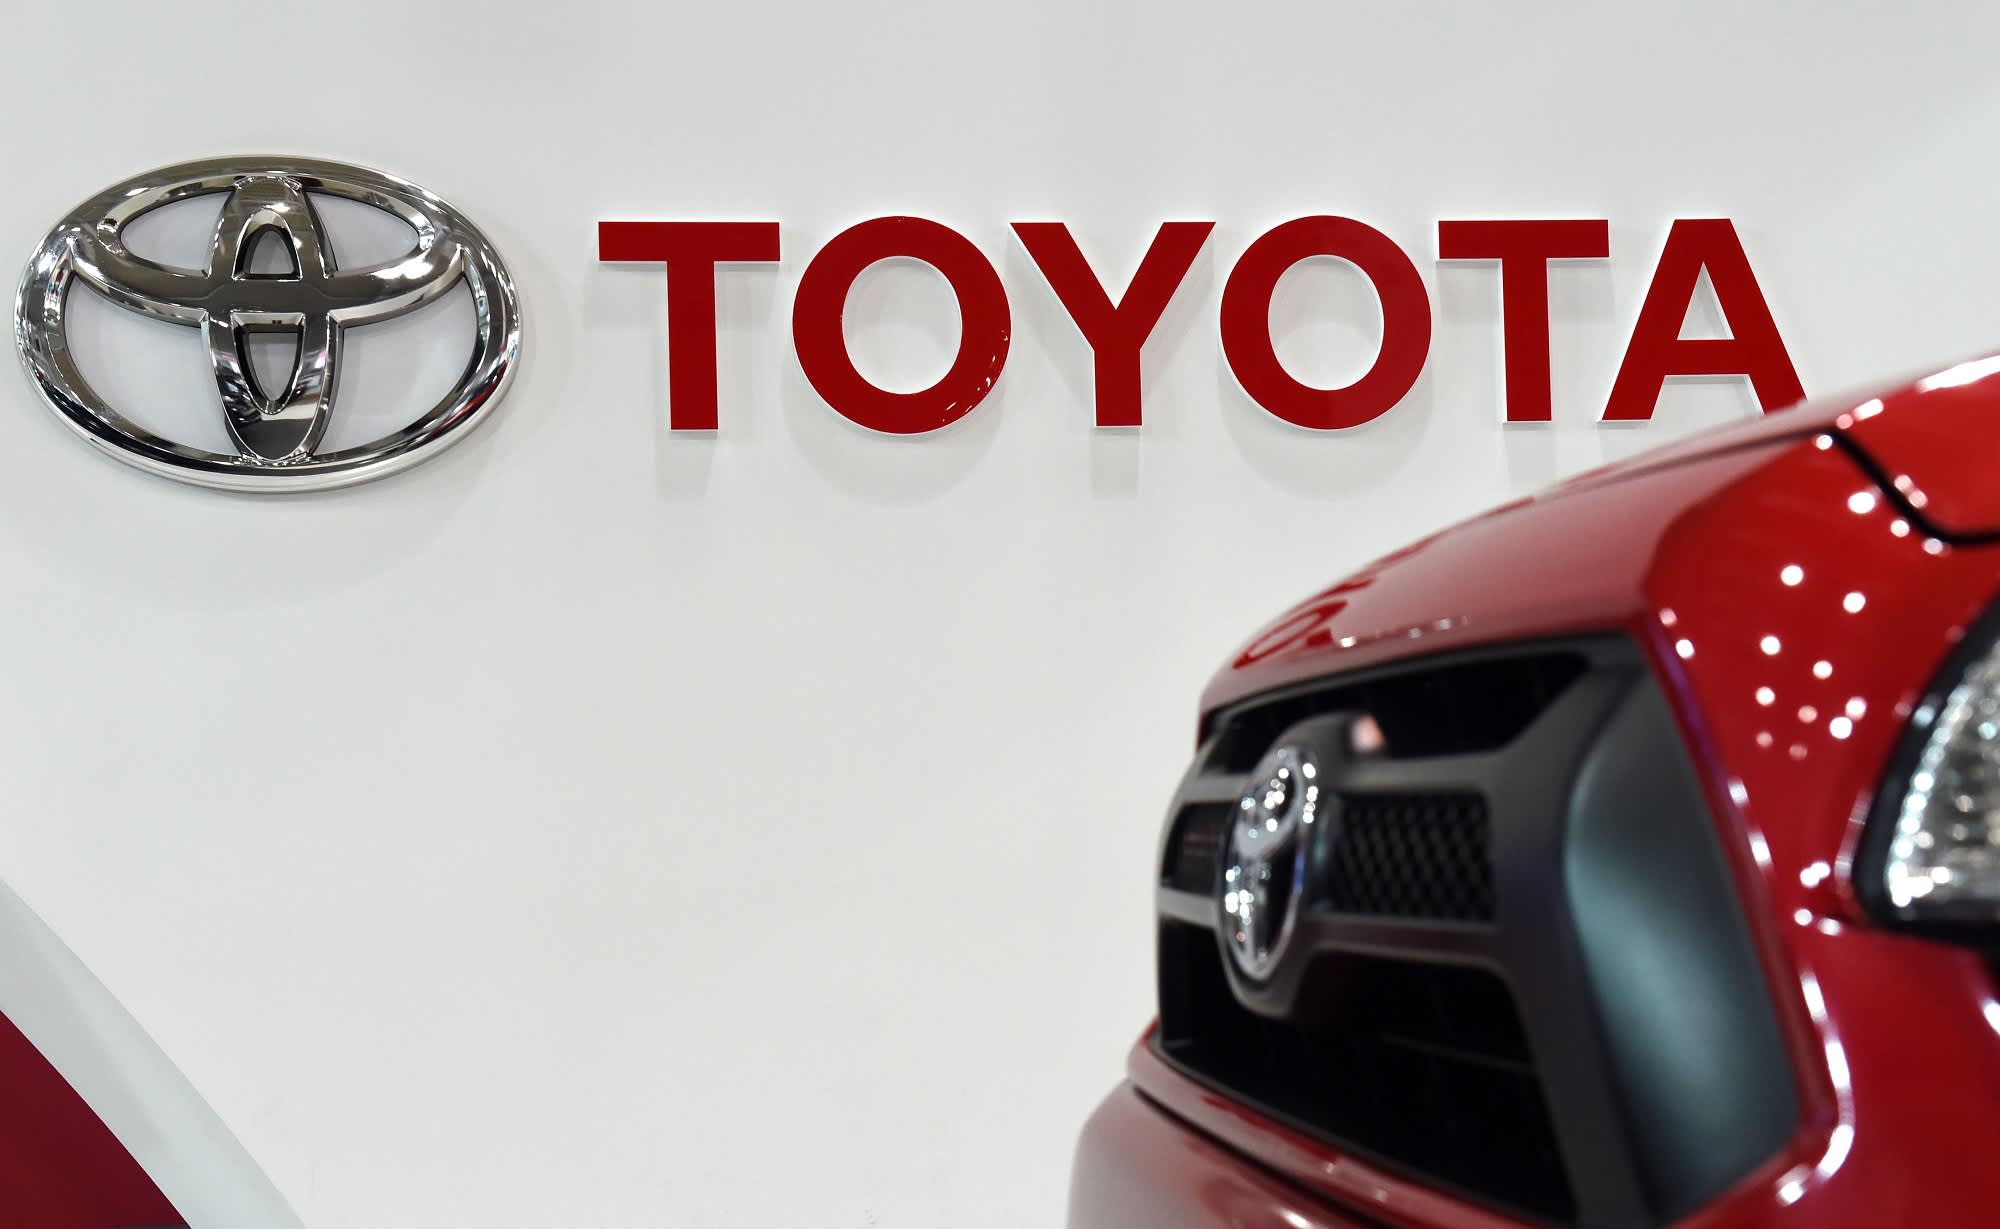 Toyota says Trump's latest tariff threat shows Japanese investments in US 'not welcomed'